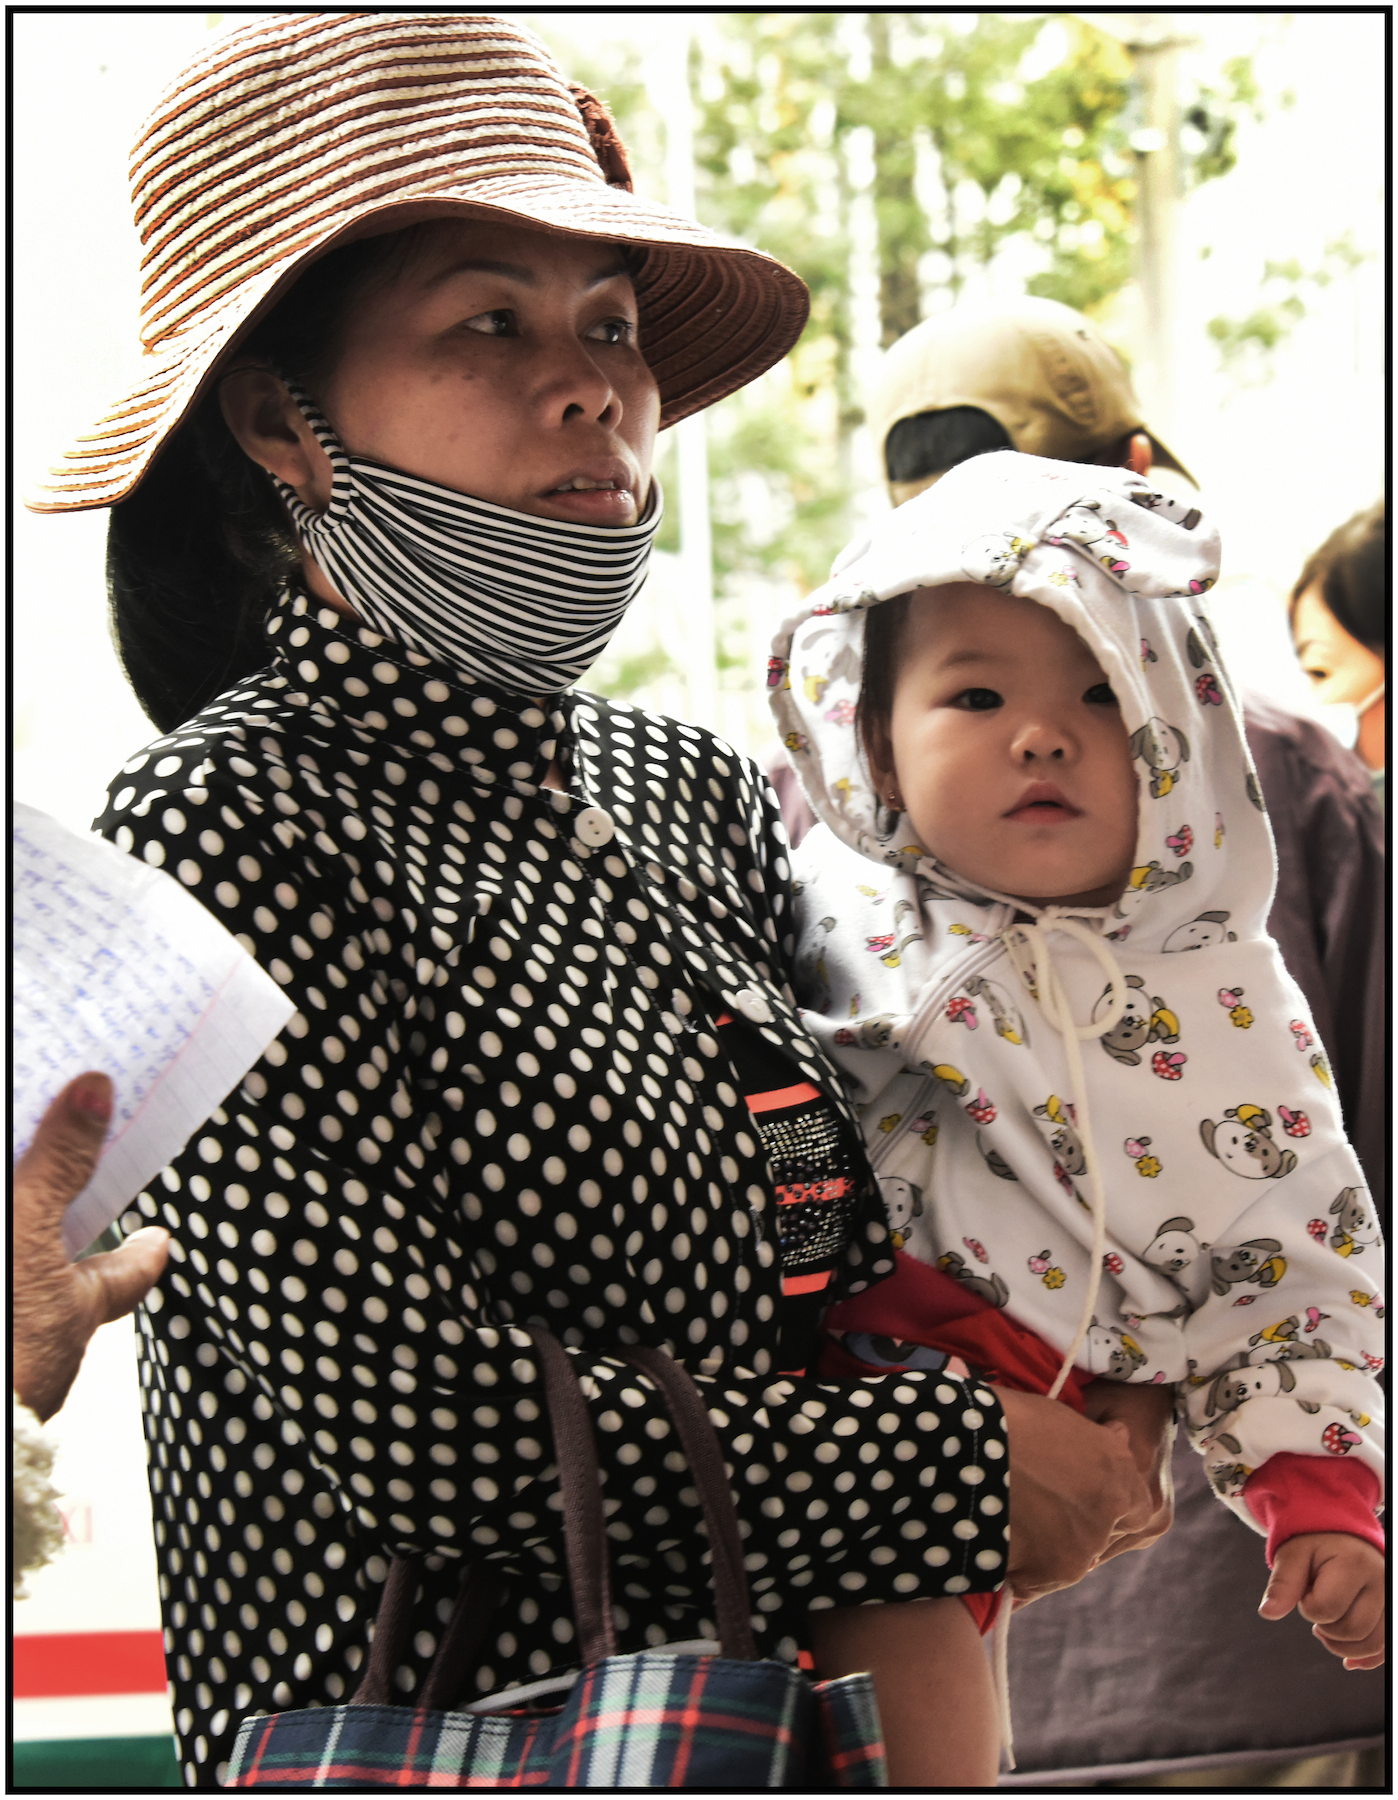 Woman with child wait outside Binh Tay Market, for merchendise she purchased, to be delivered to her vehicle, Binh Tay Market, Cholon, Saigon/HCMC, Dec. 2015